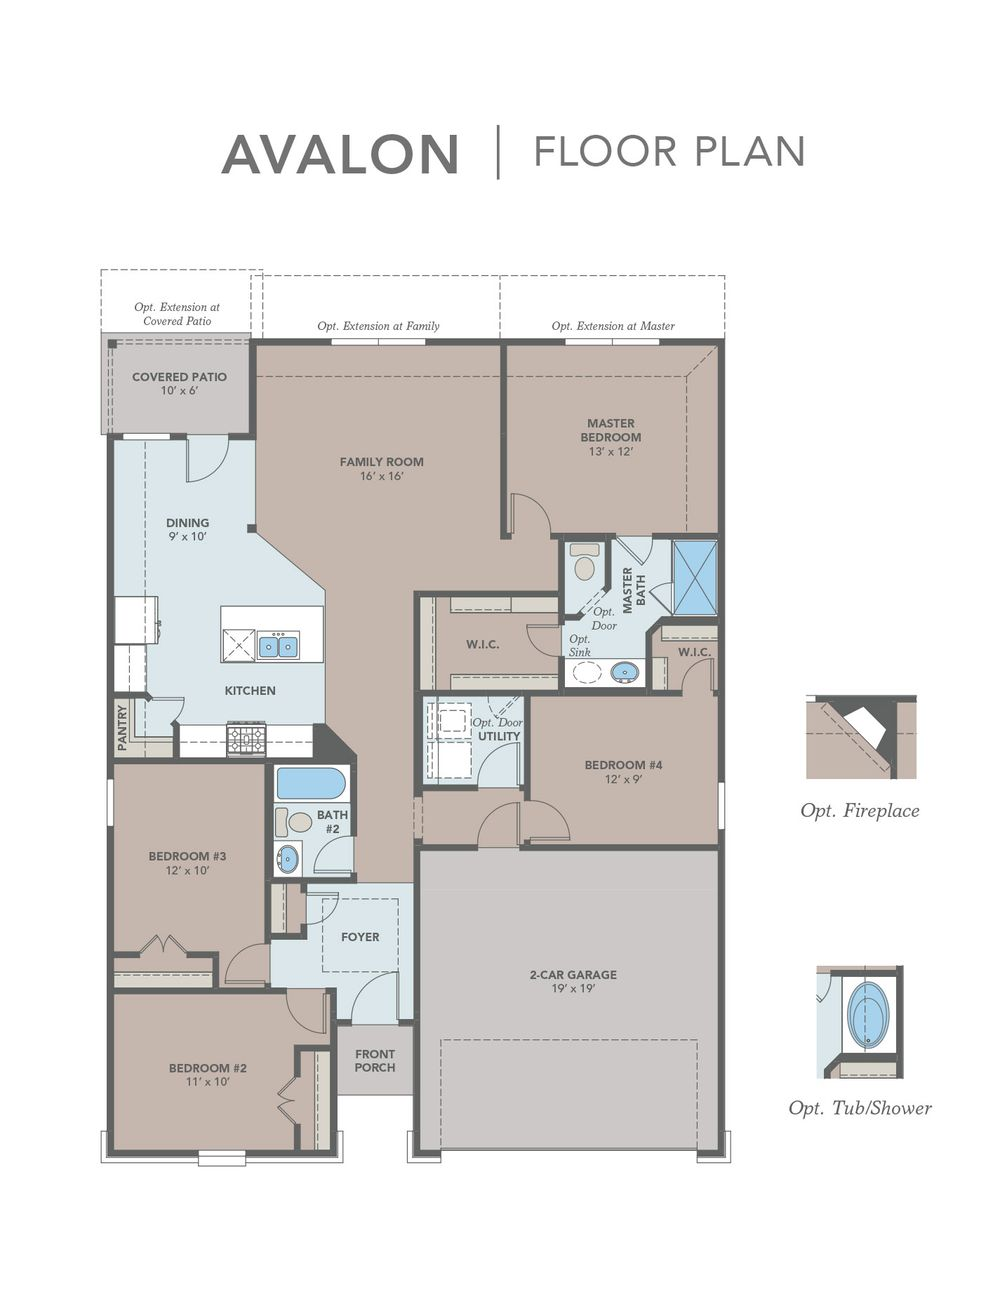 Avalon home plan by gehan homes in clements ranch for Find house floor plans